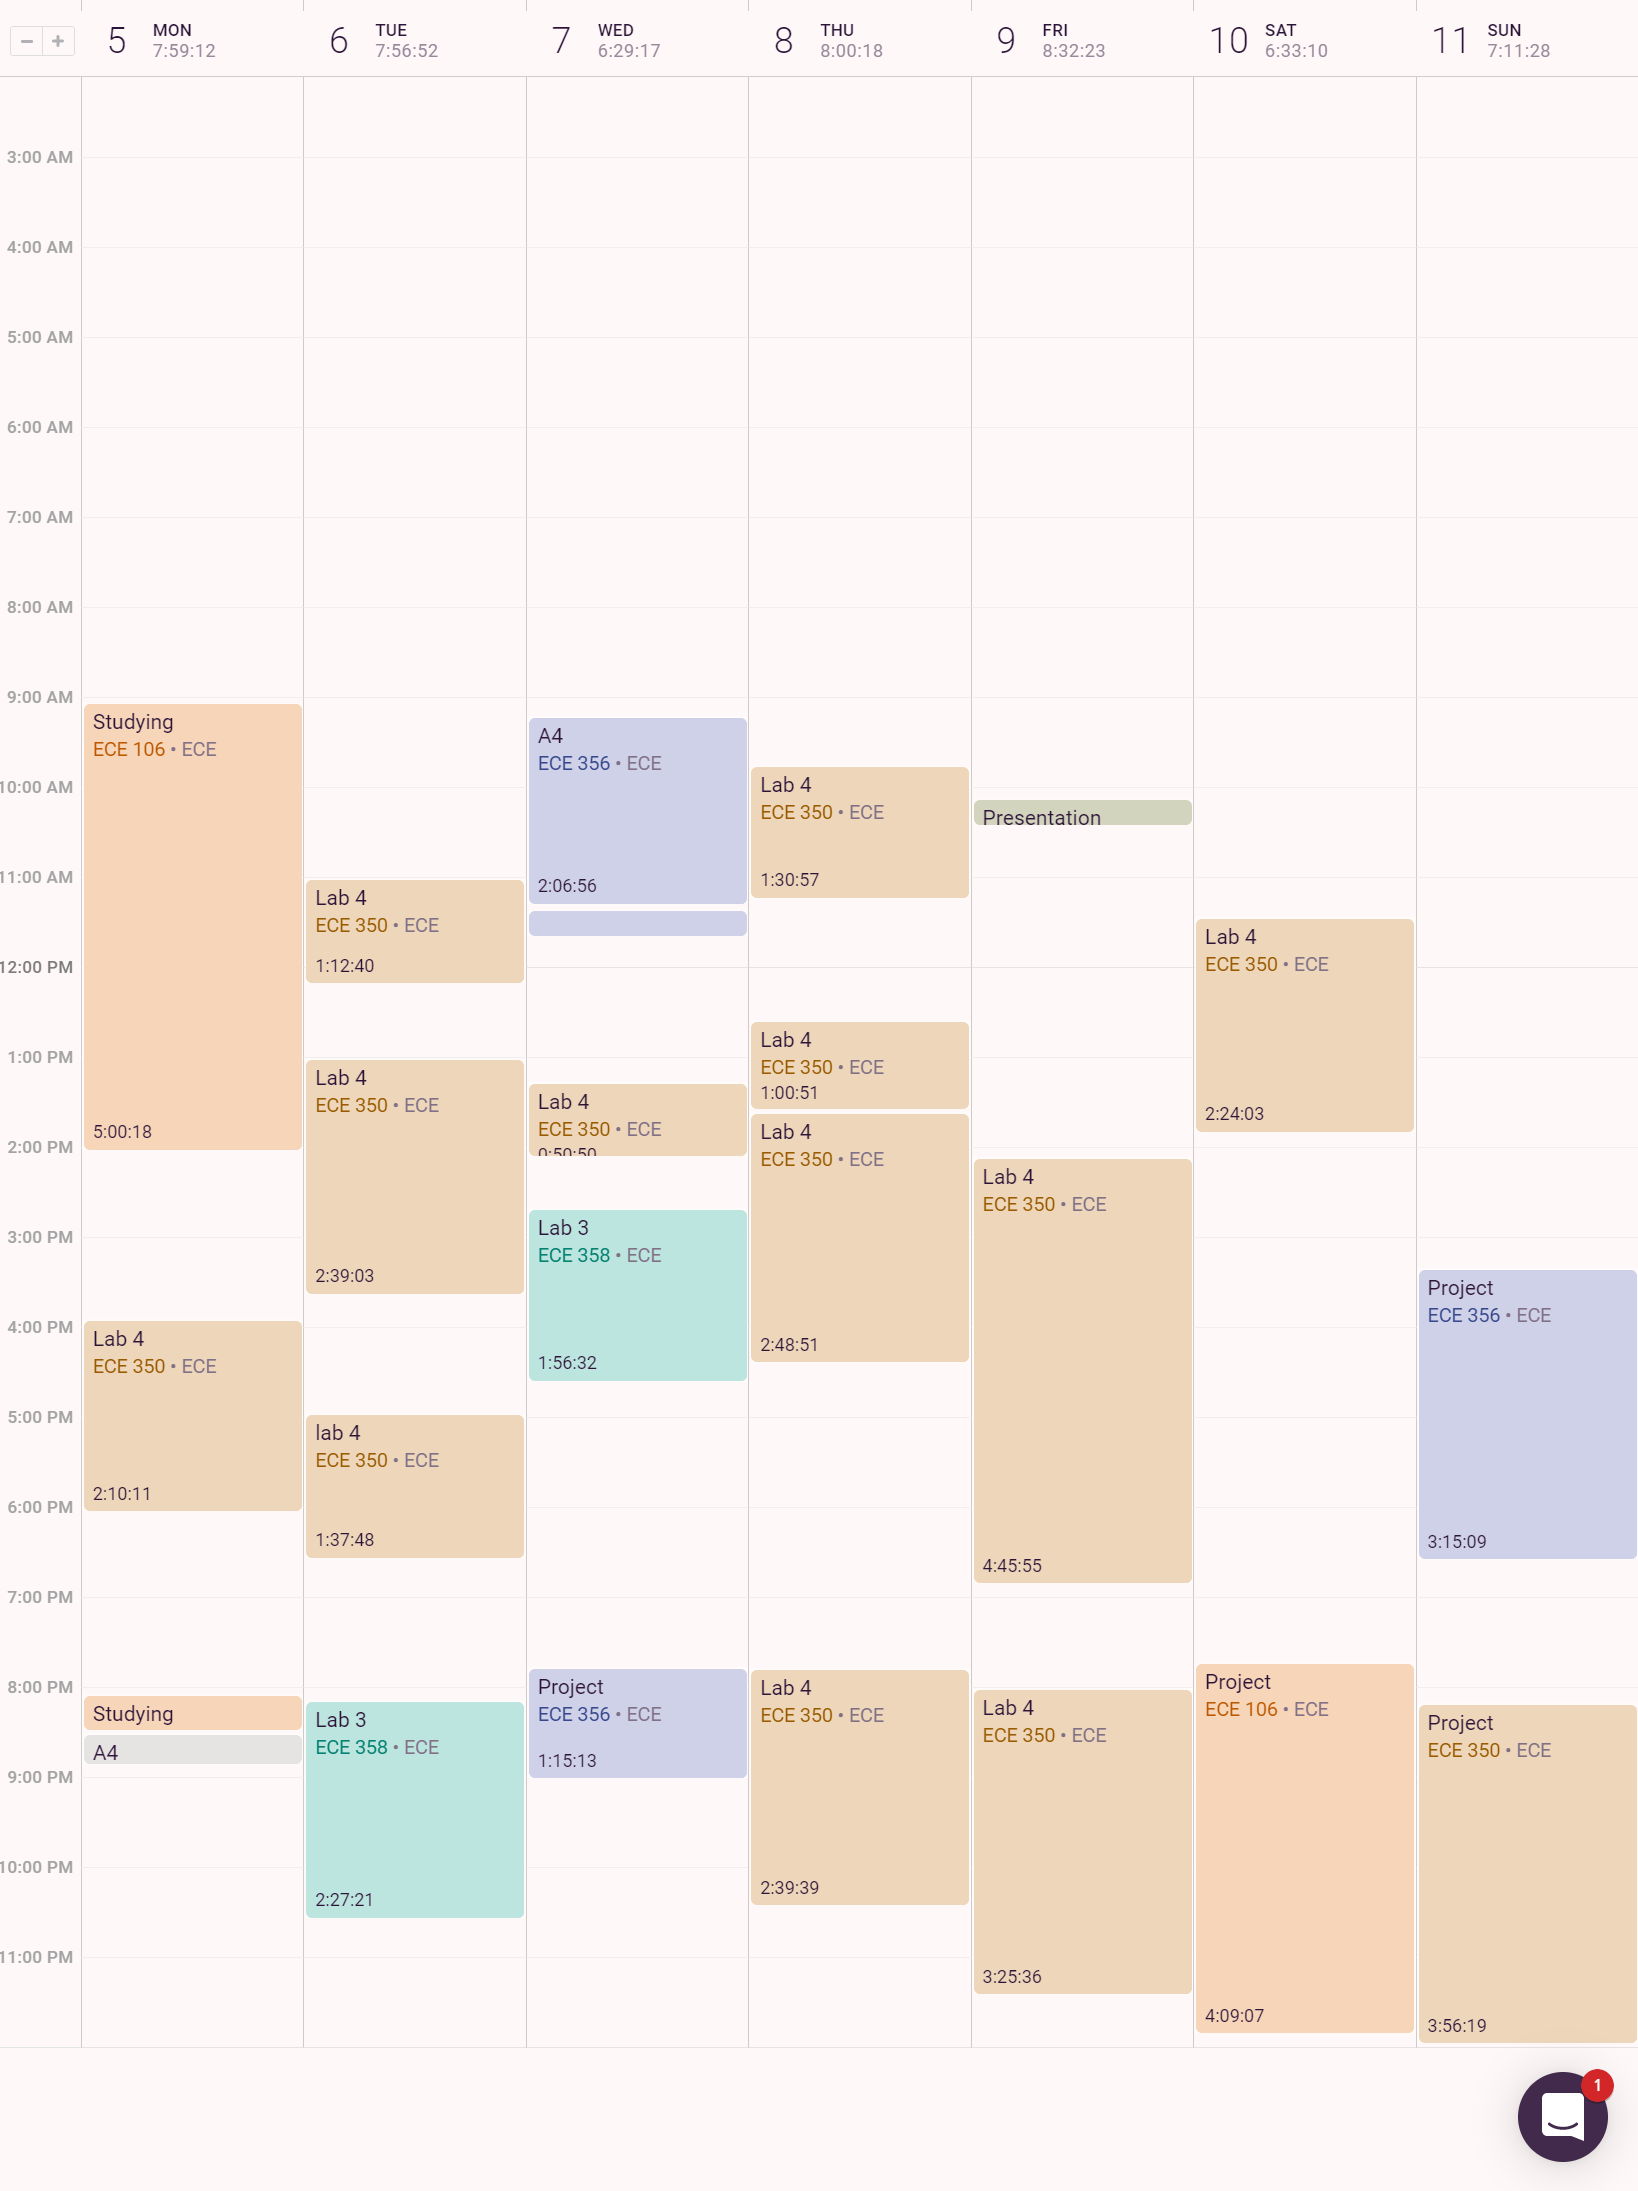 Here's what my daily schedule looked like during that week